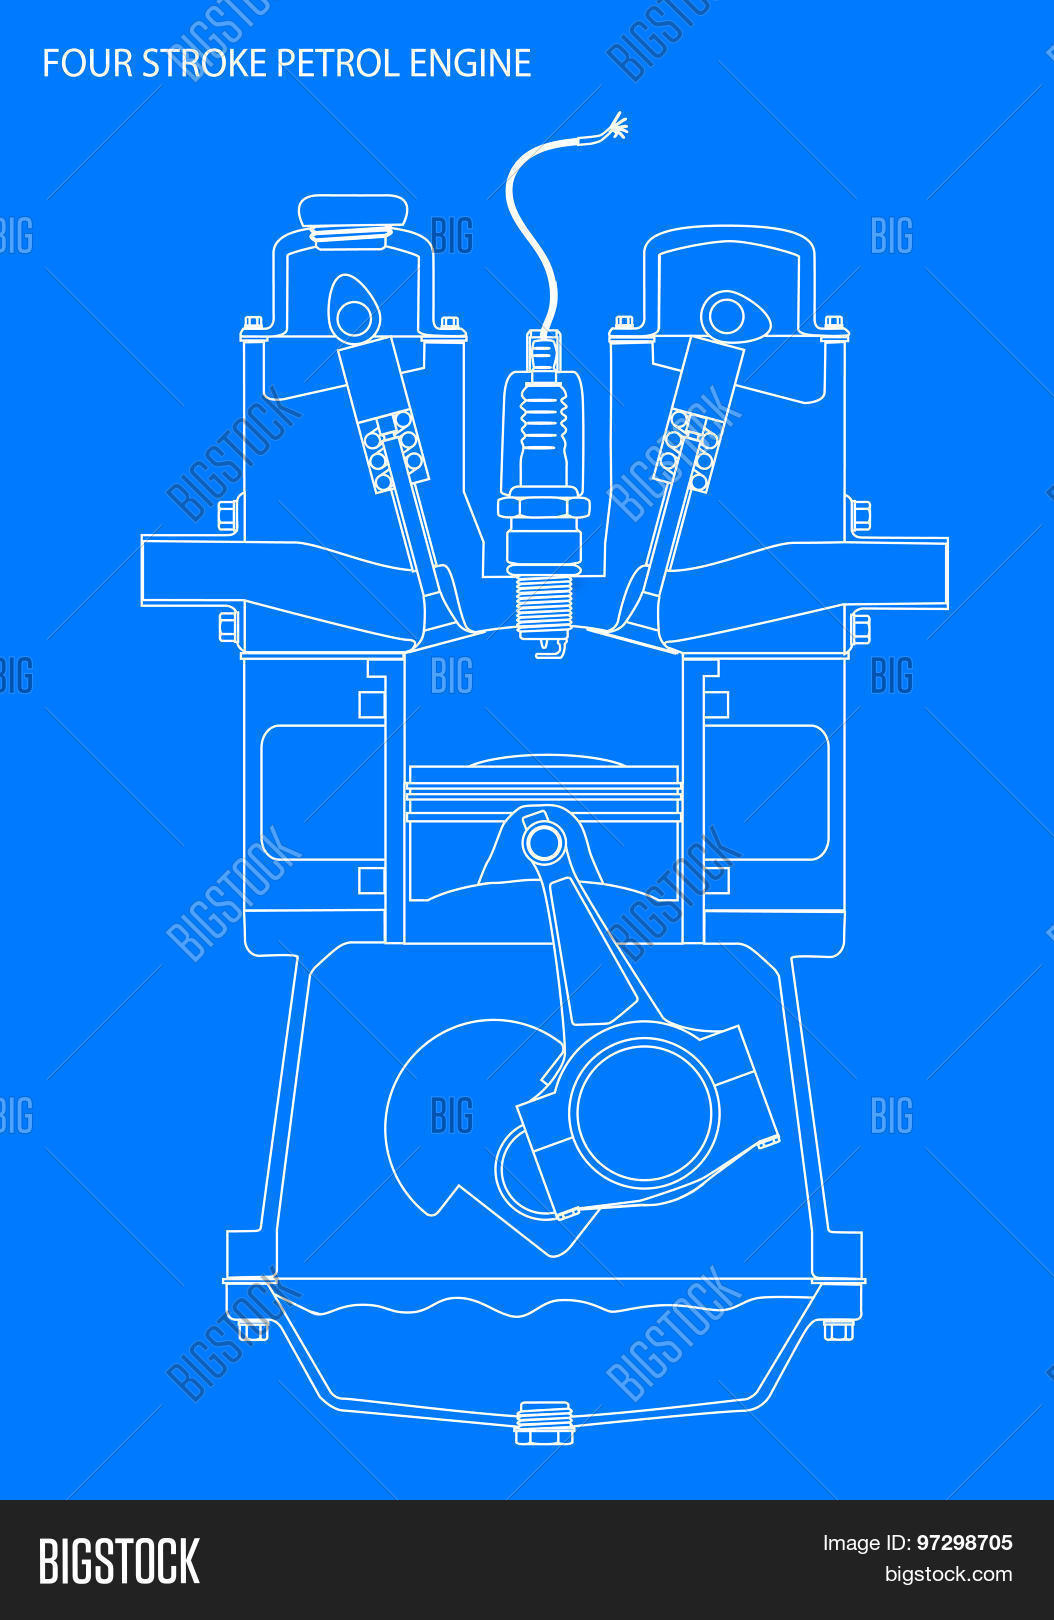 Vector y foto engine line drawing blueprint bigstock engine line drawing blueprint malvernweather Choice Image